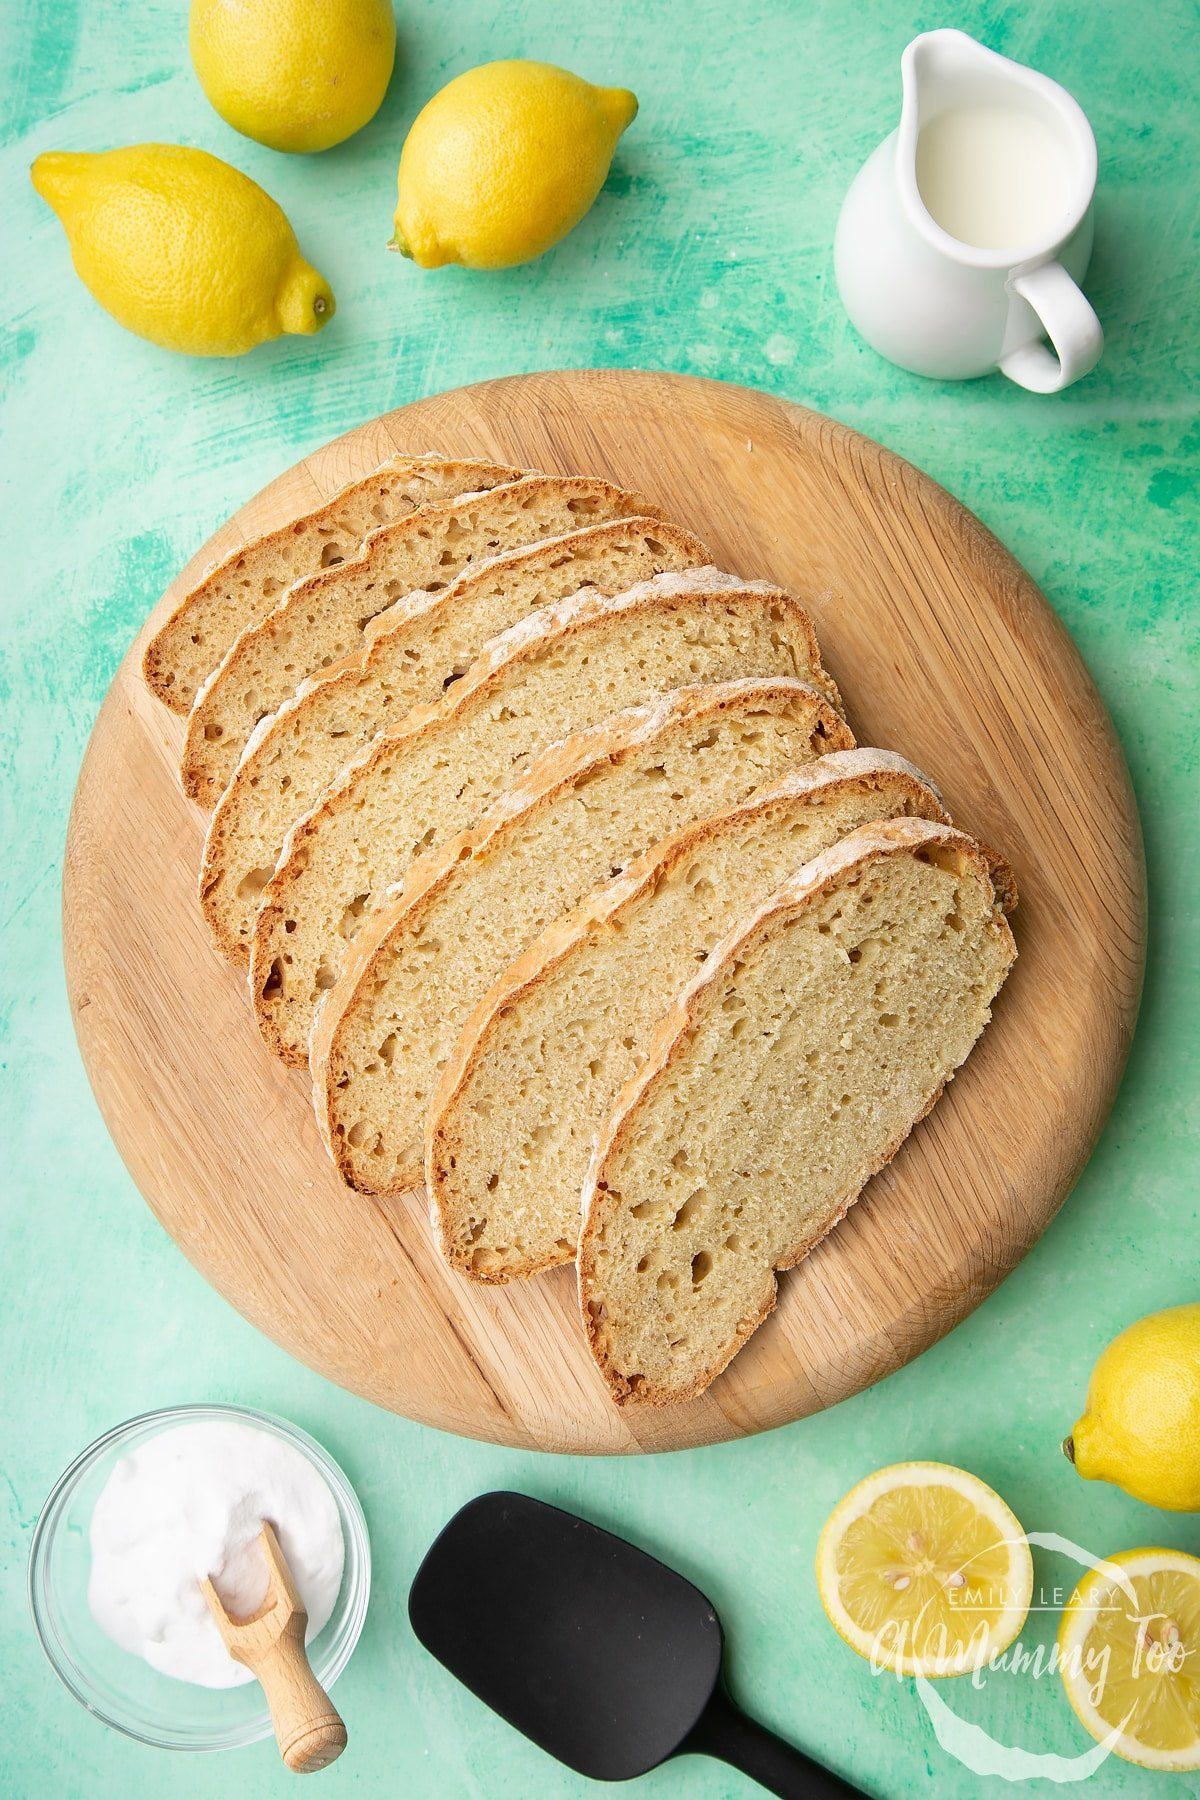 Sliced soda bread without buttermilk on a wooden board. Lemon, milk and bicarbonate of soda are placed around the board.